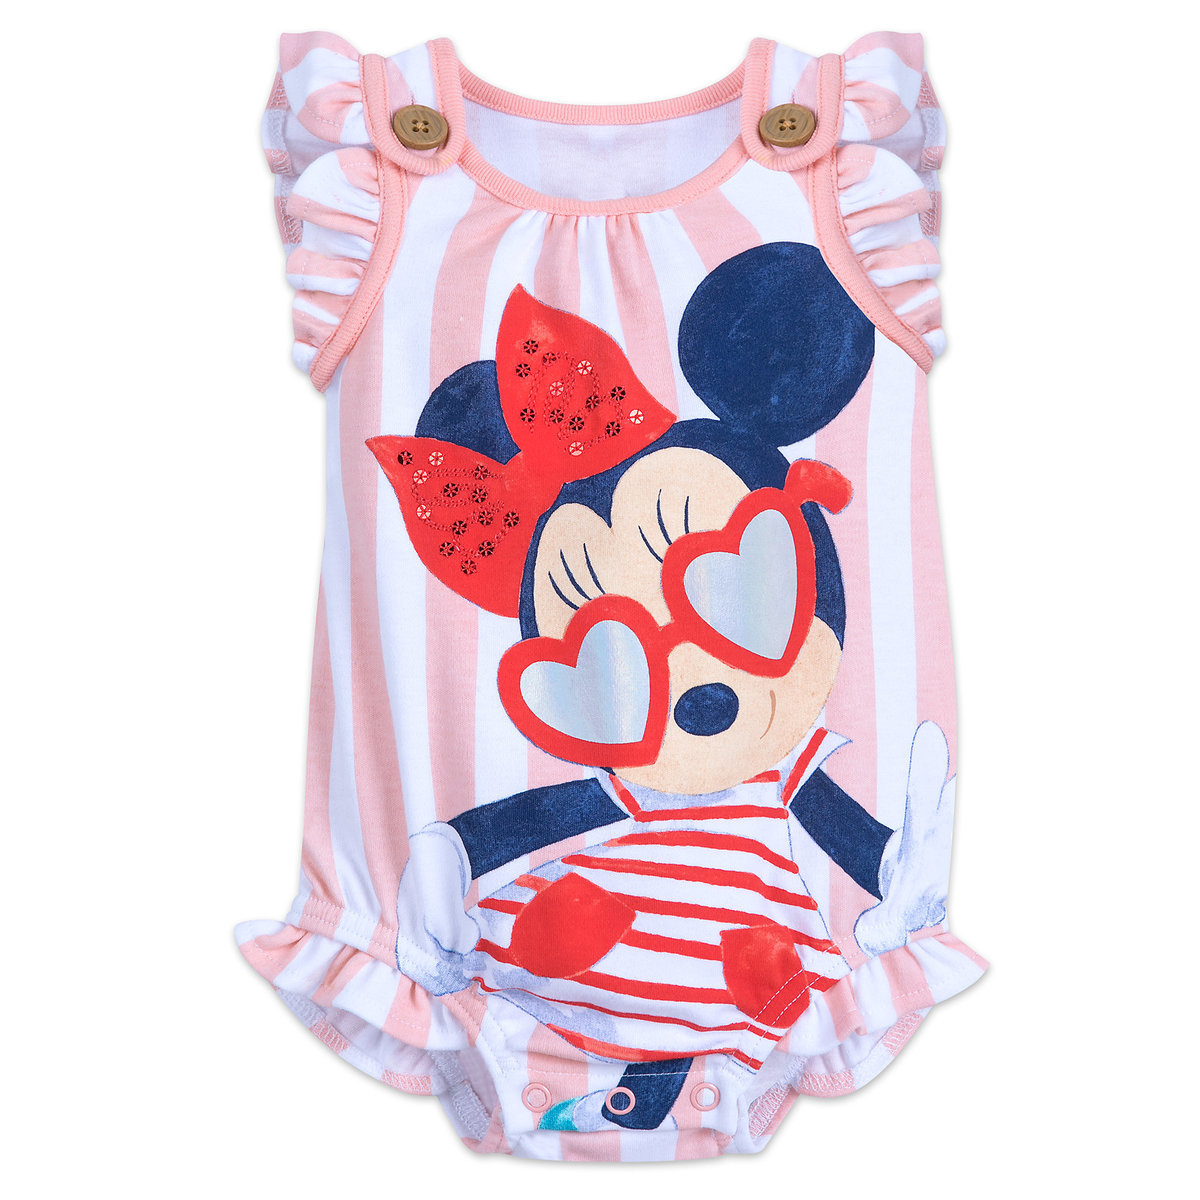 82015b1758 Product Image of Minnie Mouse Striped Bodysuit for Baby # 1